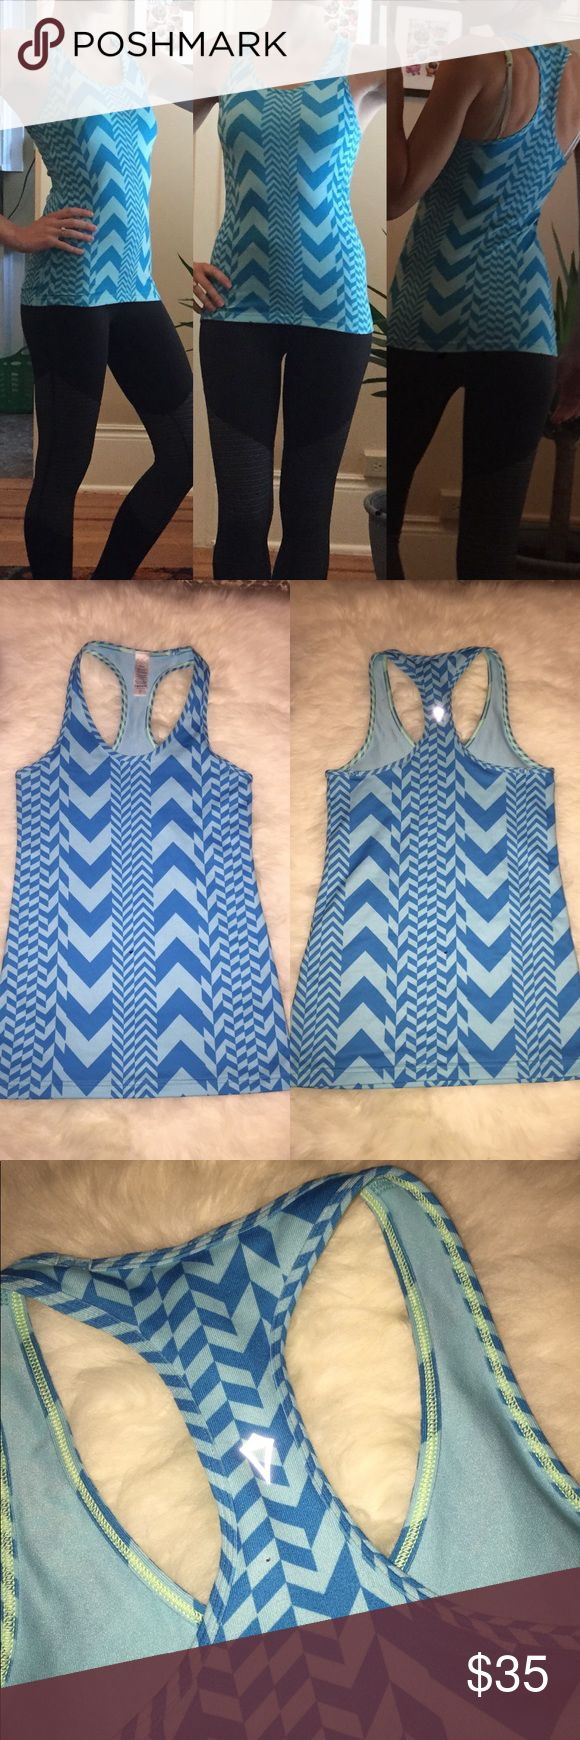 Ivivva💕Chevron Stripe Yoga Blue Cool Racerback Lovely Patagonia regulator half zip that's the perfect layer to keep you warm on a chilly fall or winter morning! Perfect layer for any activity in a gorgeous color!!  ❤️️blue and light blue color  ❤️️Size 10 in ivivva so fits like a Lulu size 4  ❤️️excellent used Condition - missing zipper pull otherwise no flaws   🚫trades//bundle and save✅✅  Item #70524 Ivivva Tops Tank Tops